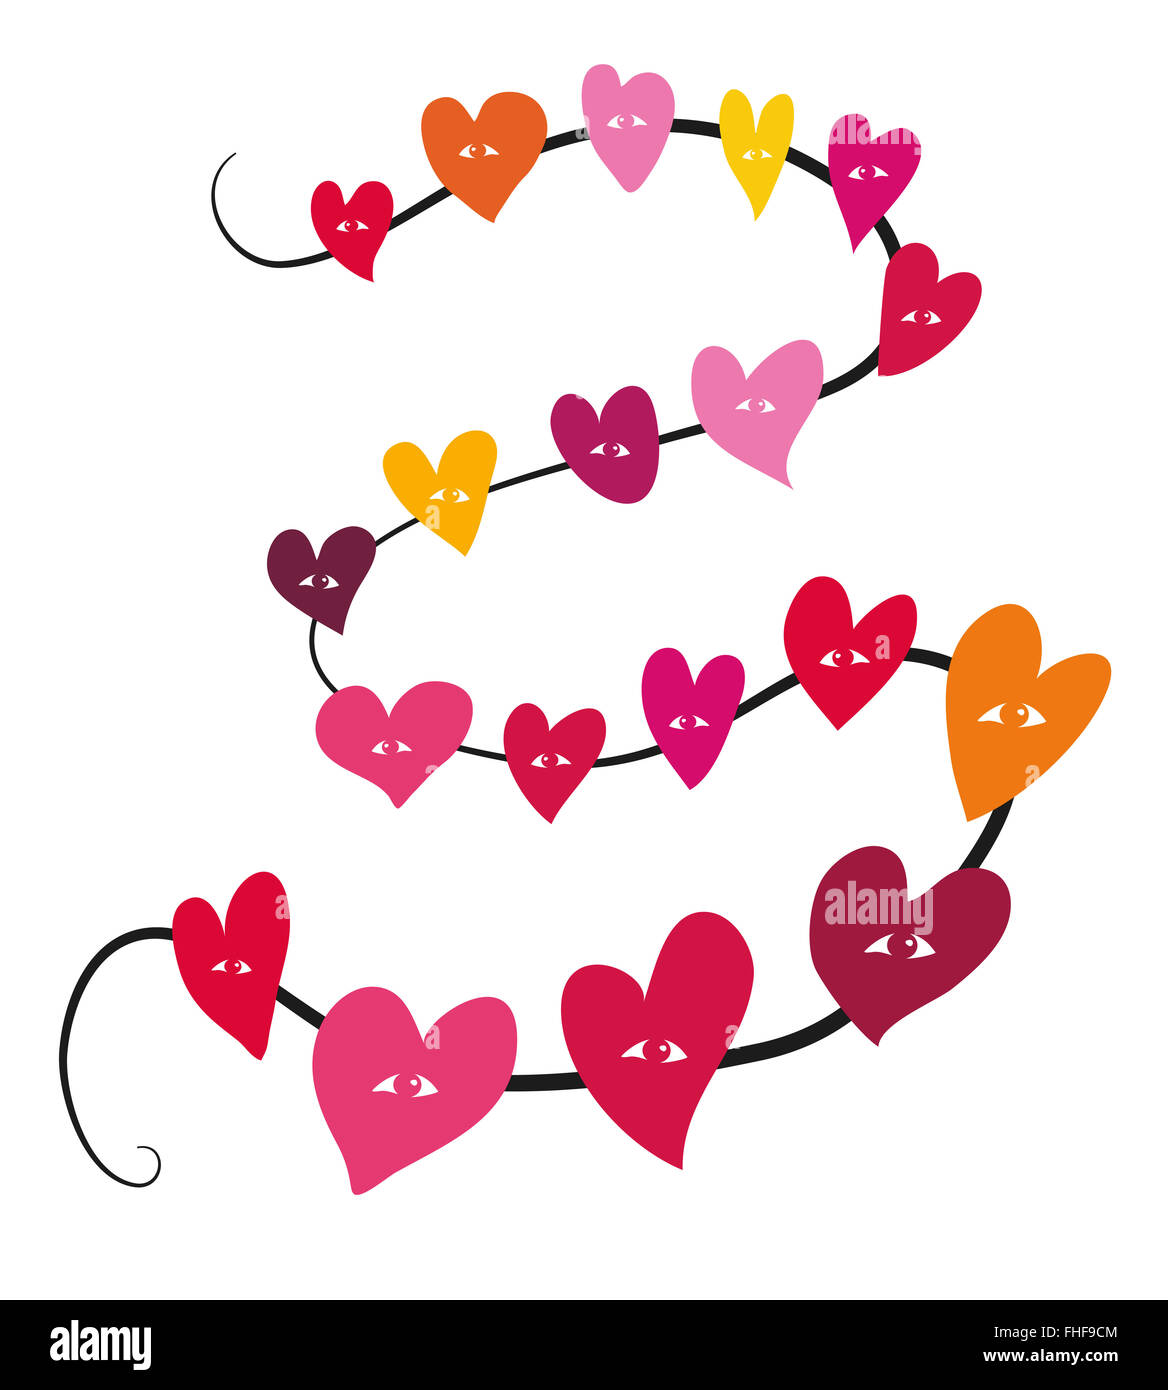 Togetherness, hearts on a string Stock Photo